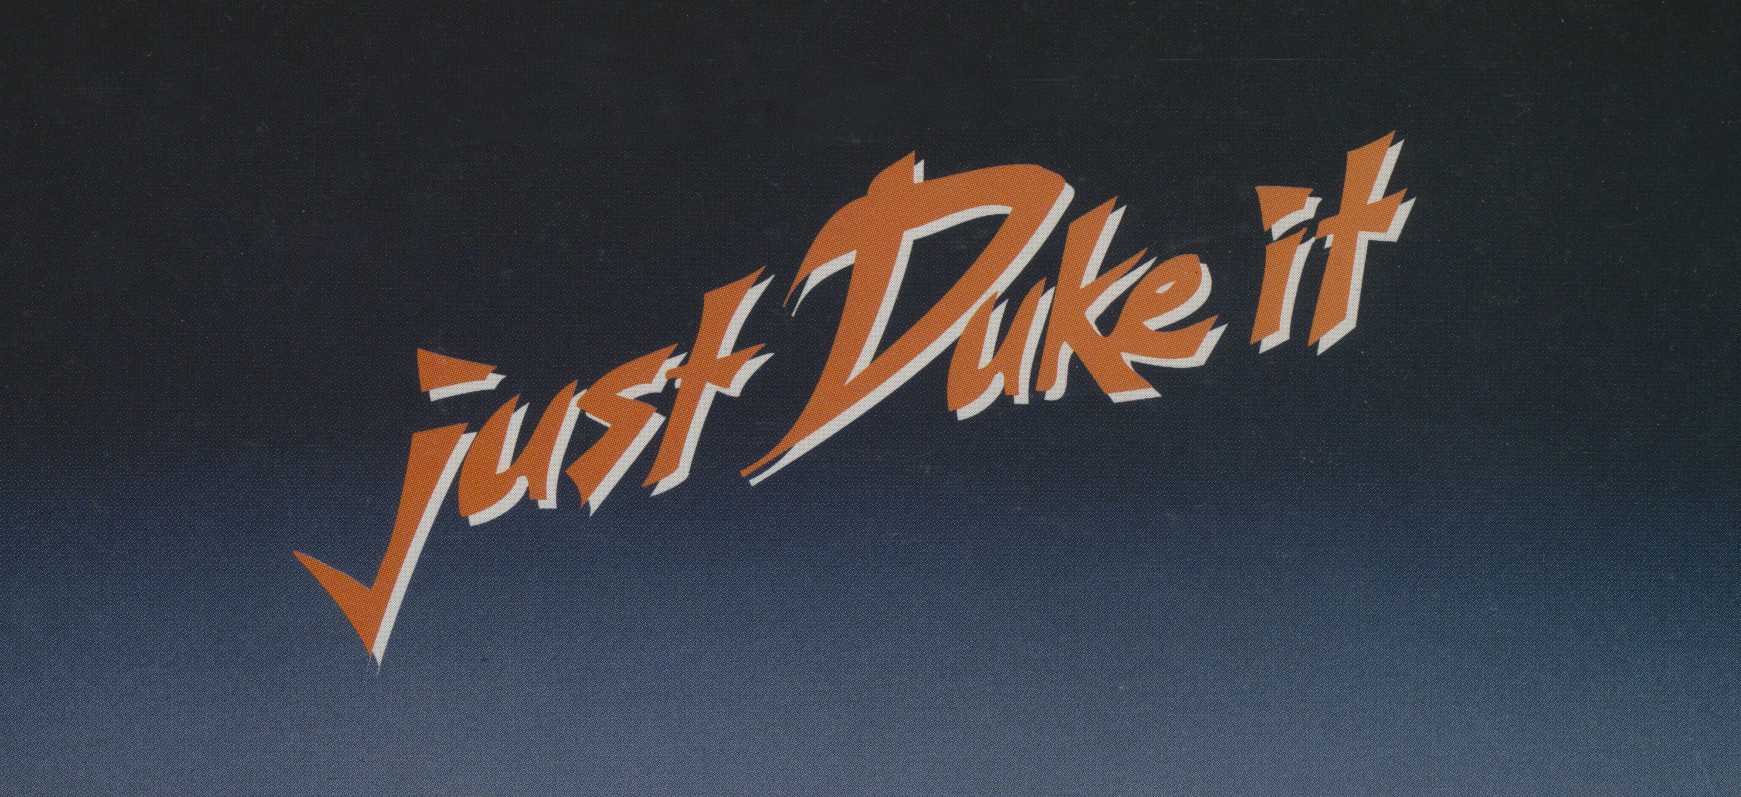 1994_just_Duke_it